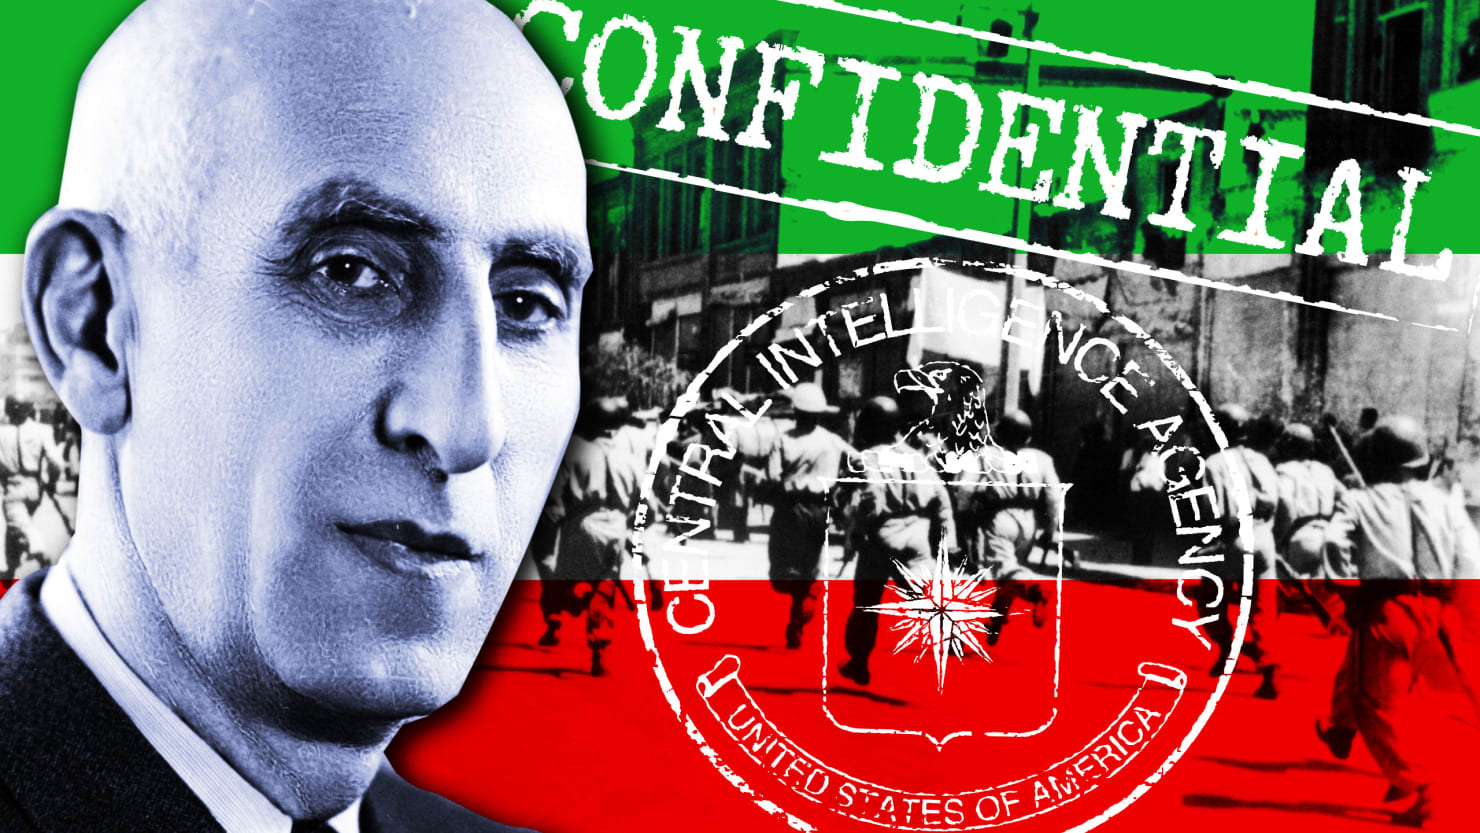 Oblivious to History, Trump's Turning Up the Heat on Iran. He Should Look at the 1953 CIA Coup.